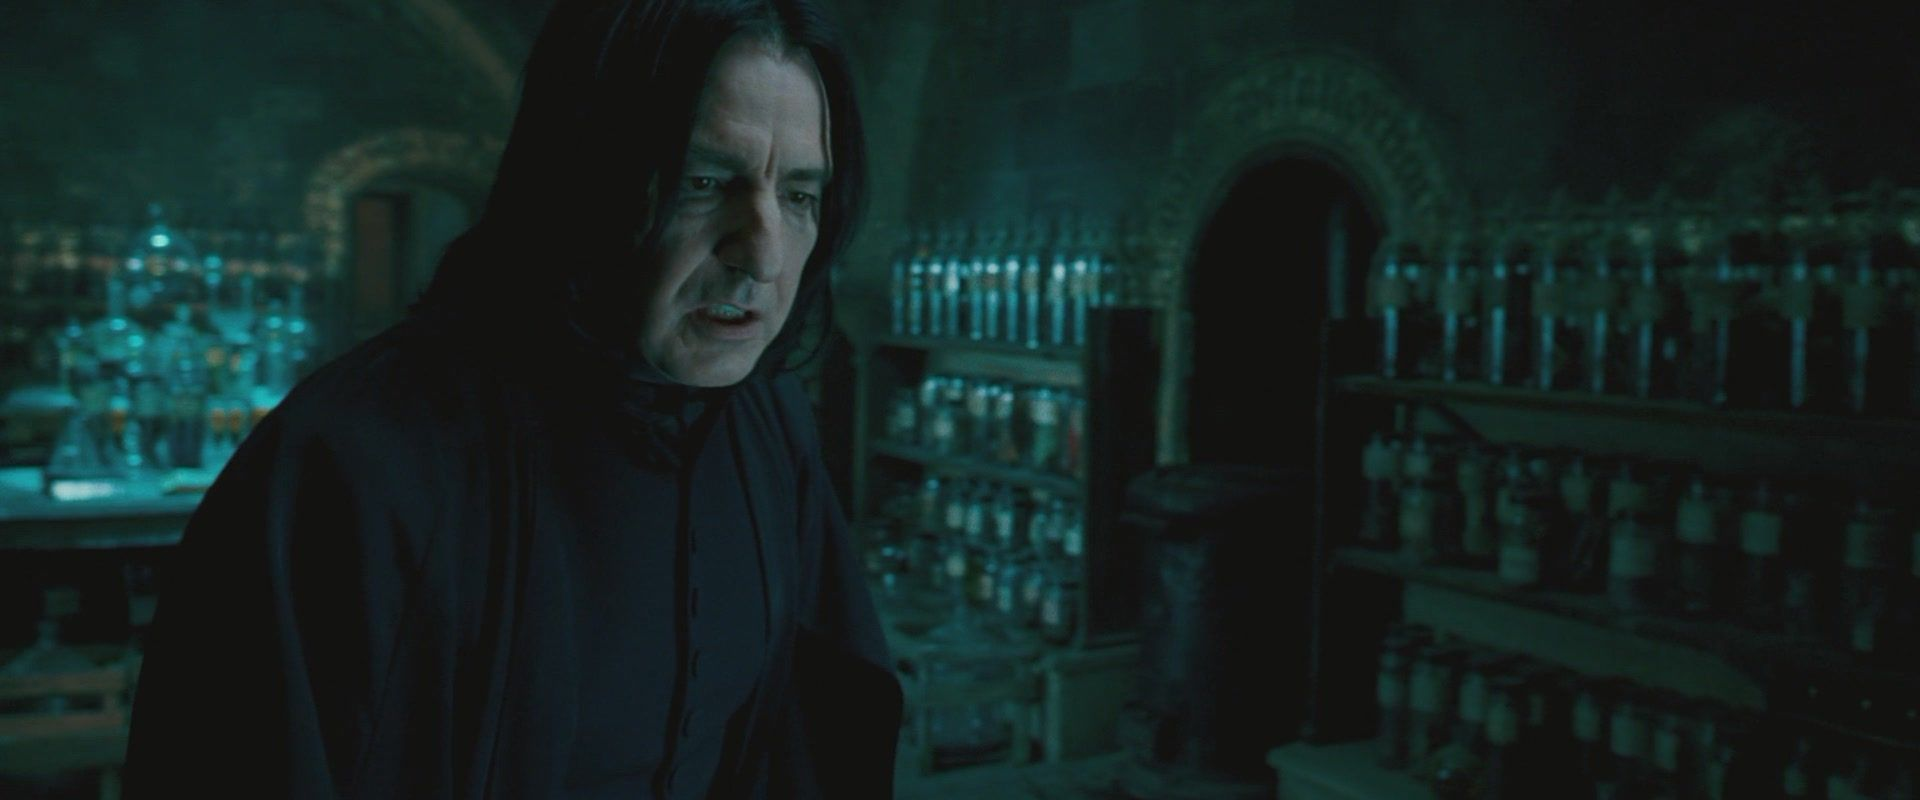 Severus Snape Image Harry Potter And The Order Of The Phoenix Bluray Harry Potter Severus Severus Snape Harry Potter Severus Snape